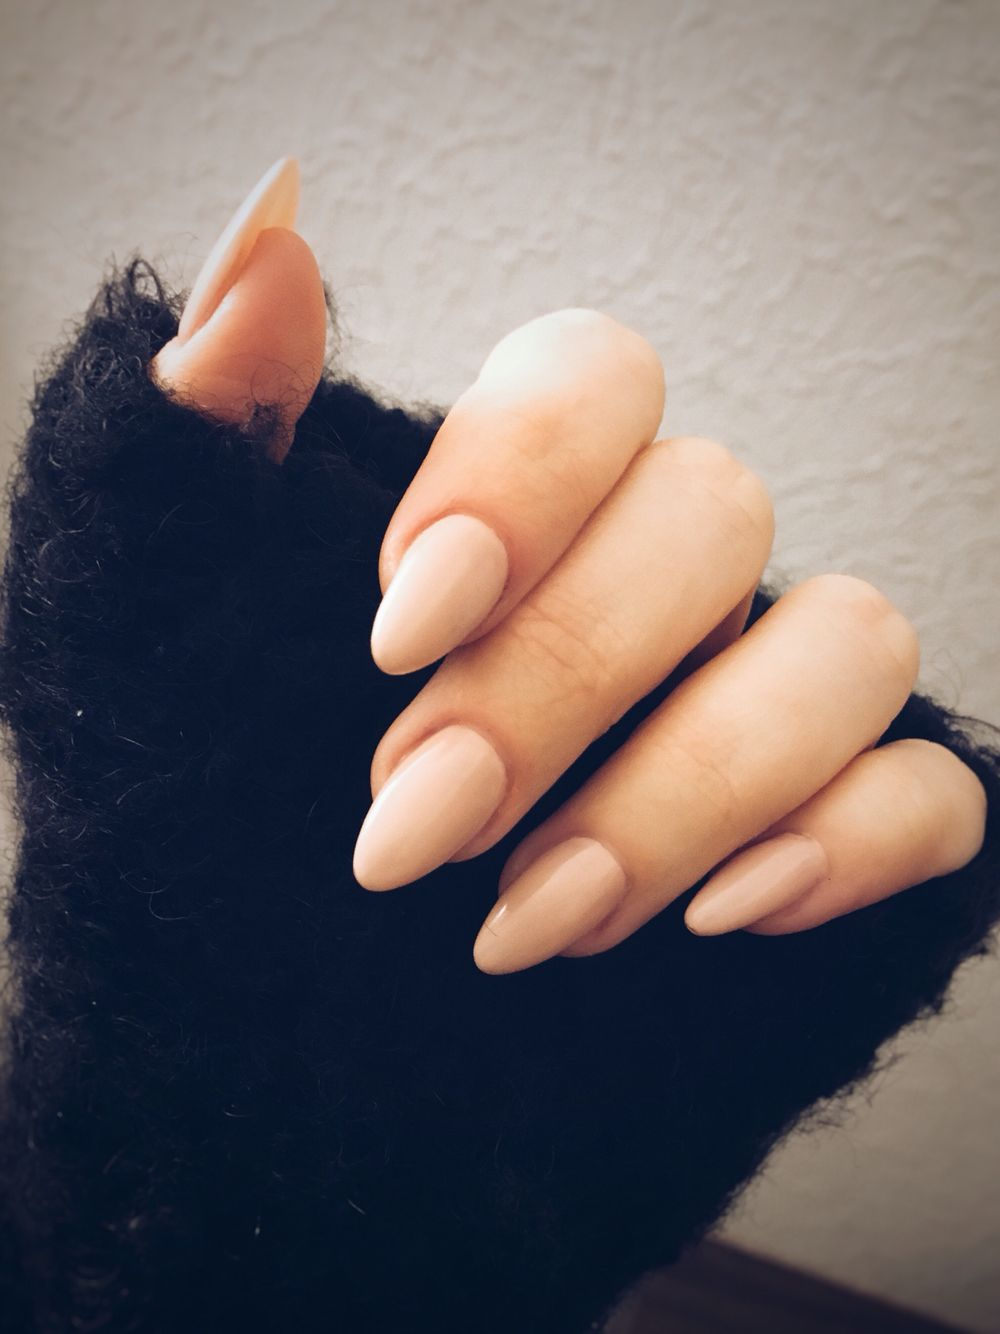 Almond nails nude | Nails | Pinterest | Almond nails, Almonds and Nude